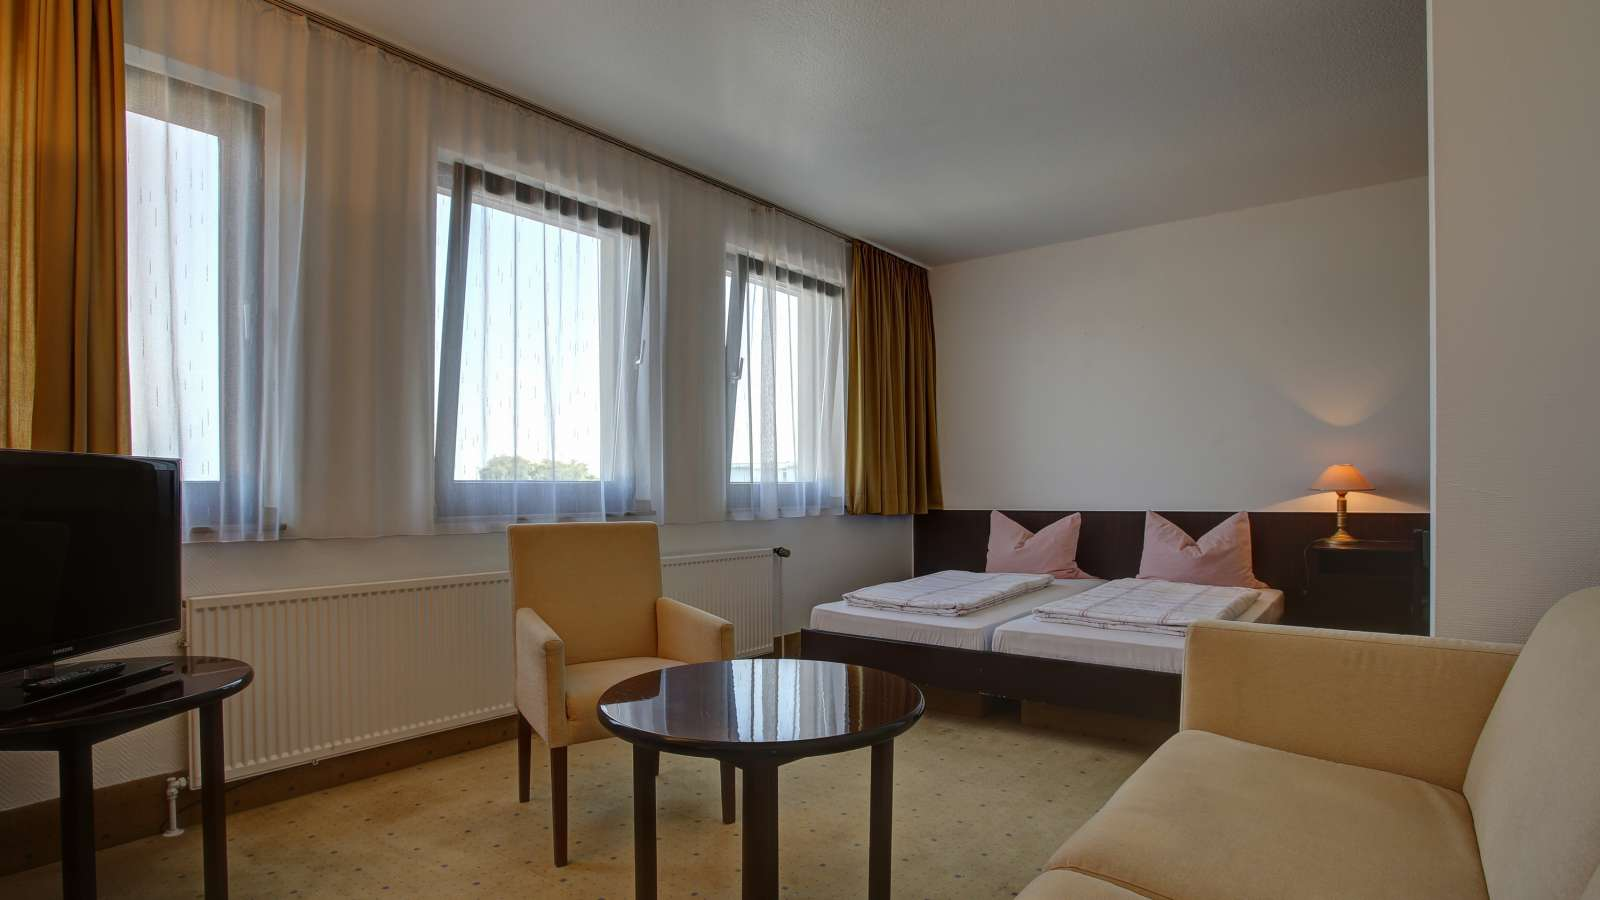 Spacious double room in the Centro Hotel Krefeld